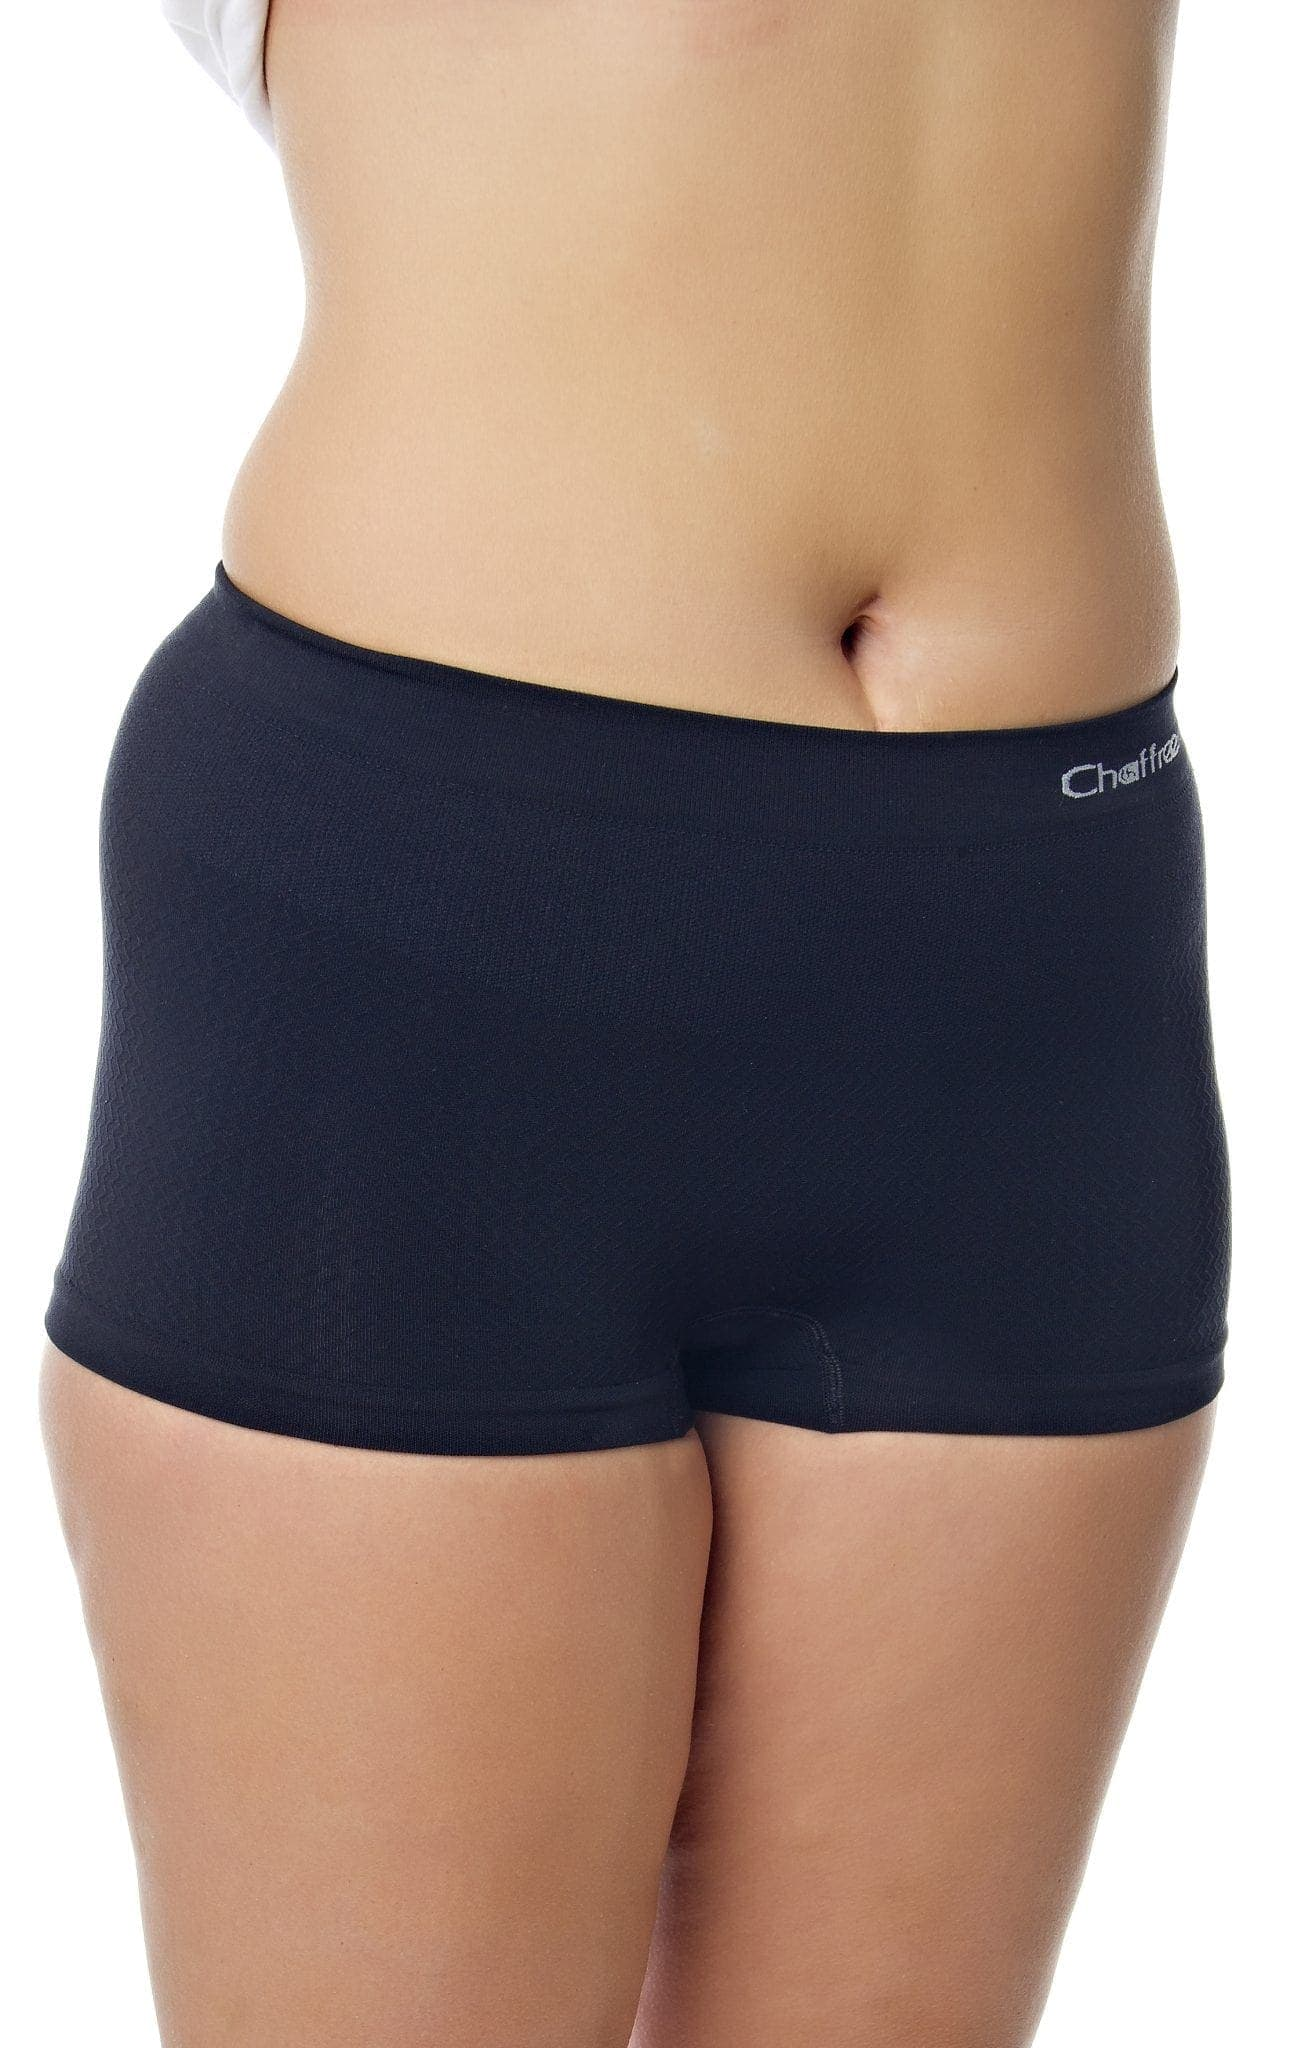 Women Boxer Briefs | Best Women's Briefs Cotton | Chaffree